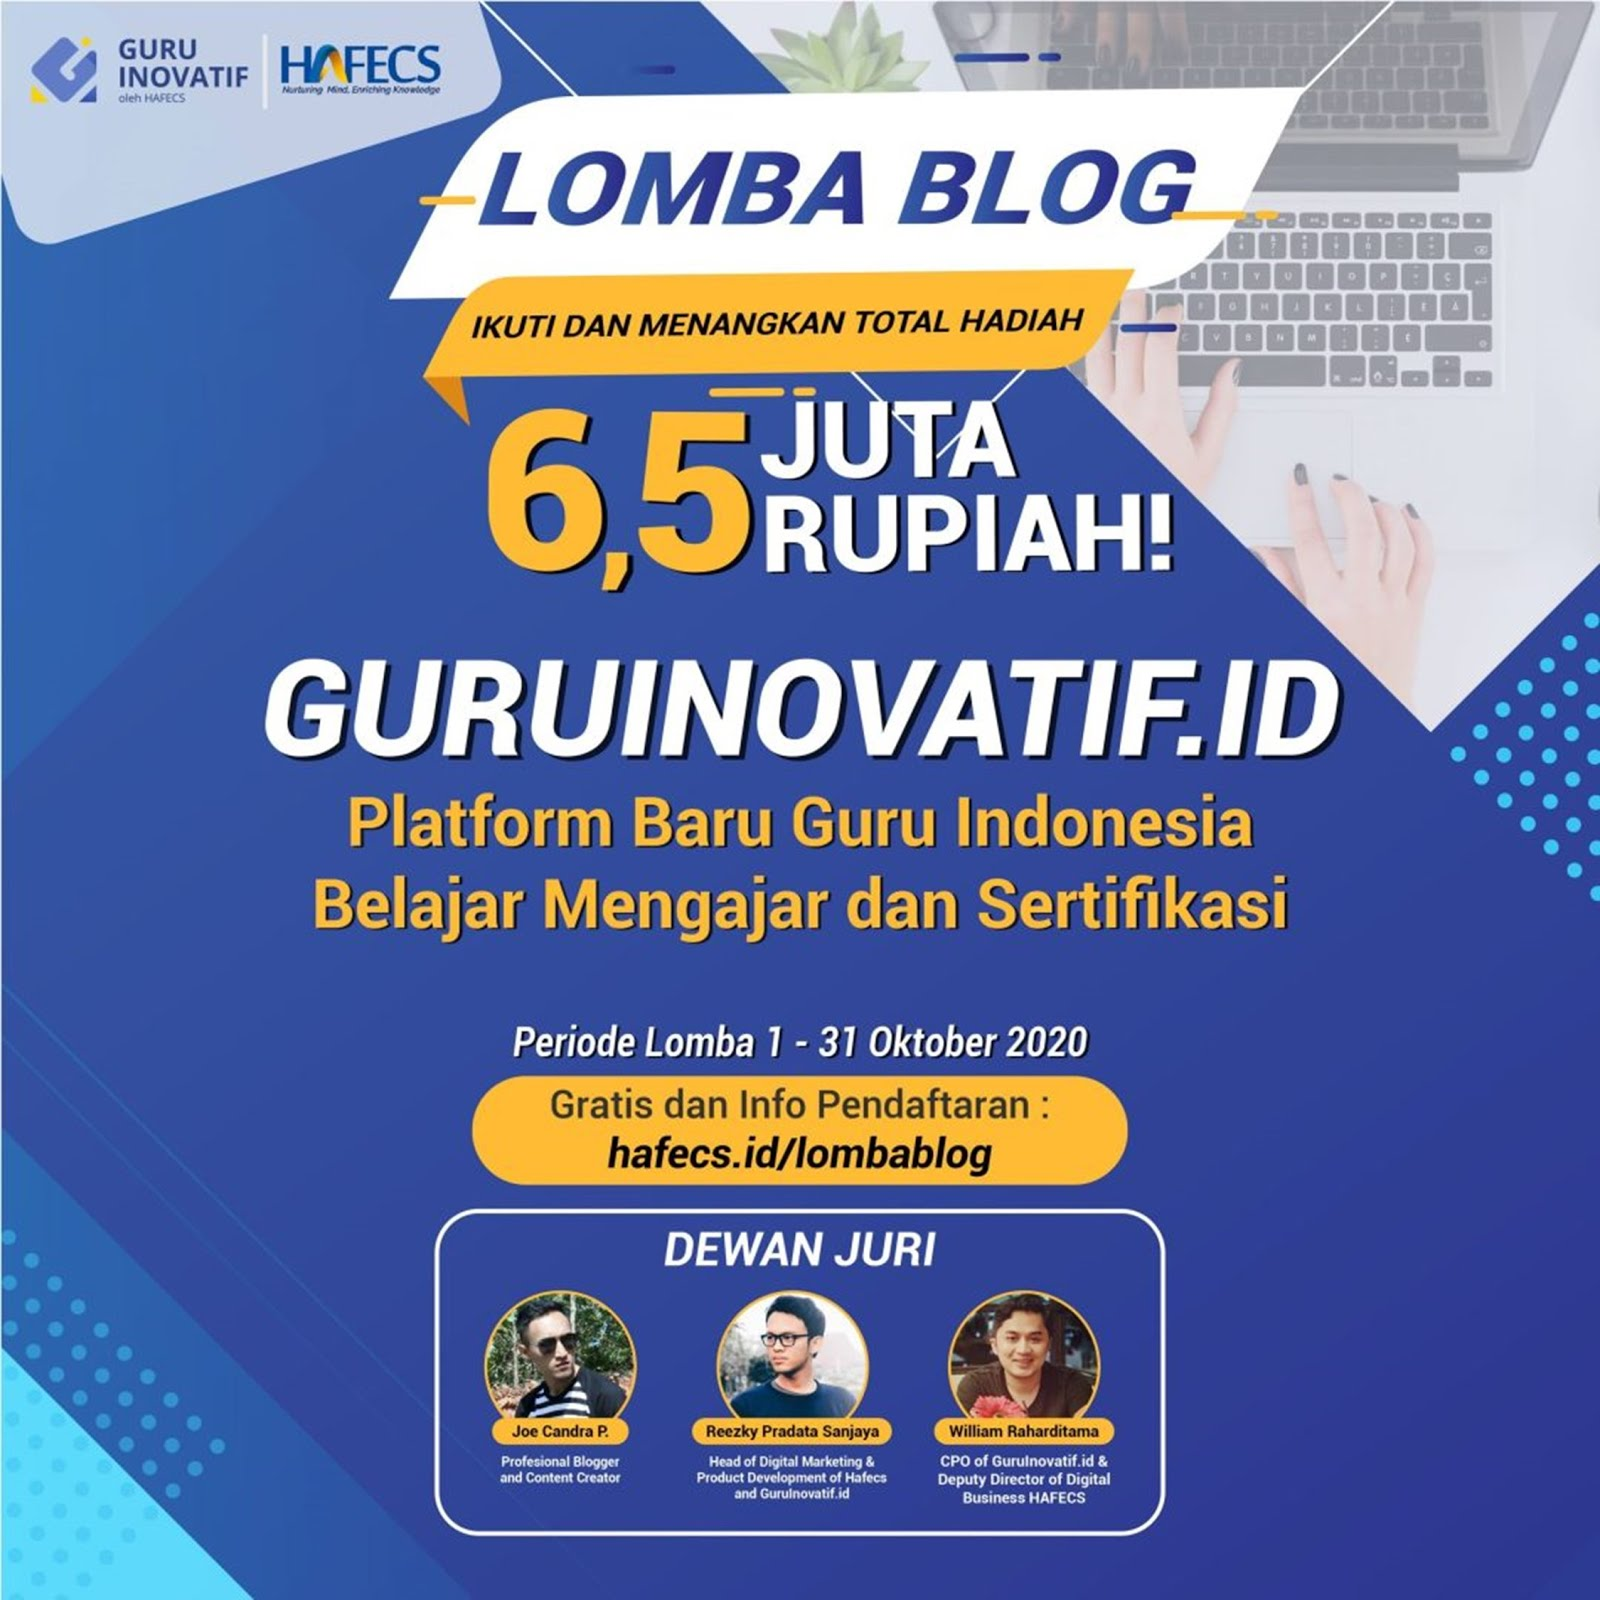 Lomba Blog GuruInovatif.id